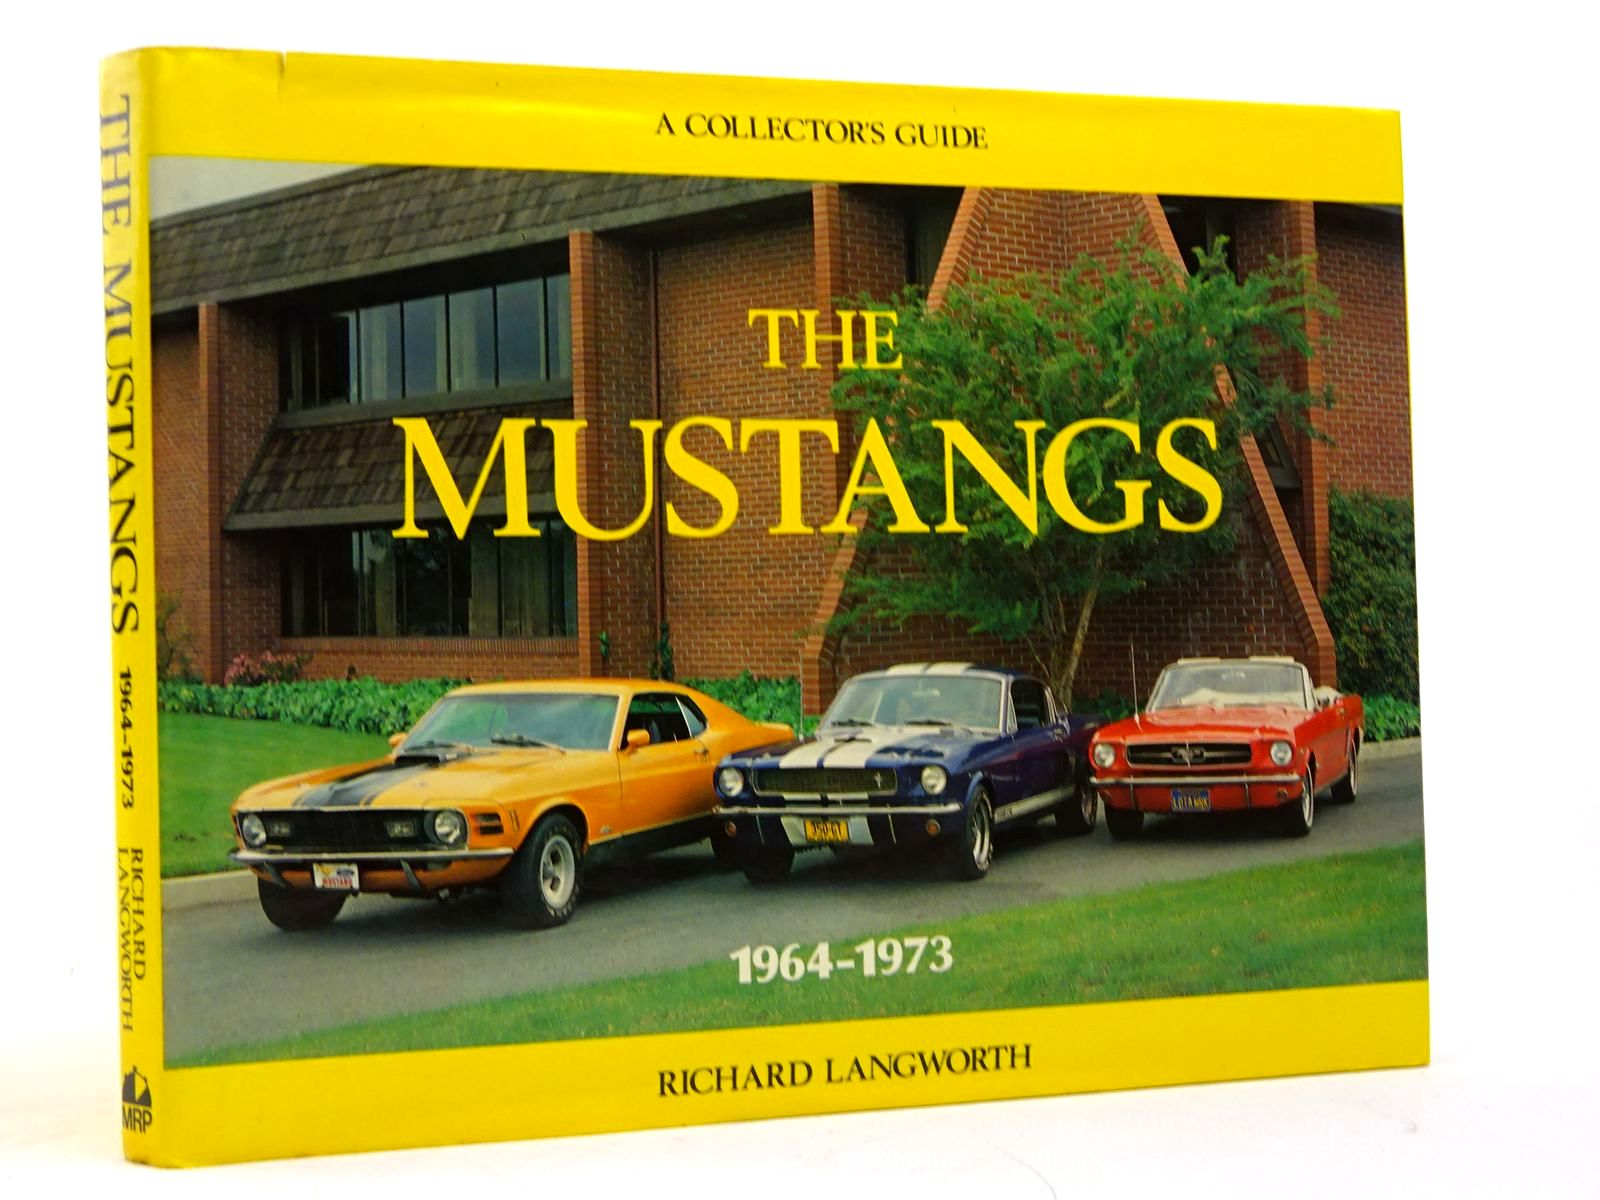 Photo of THE MUSTANGS 1964-1973 (A COLLECTOR'S GUIDE) written by Langworth, Richard published by Motor Racing Publications Ltd. (STOCK CODE: 1817966)  for sale by Stella & Rose's Books